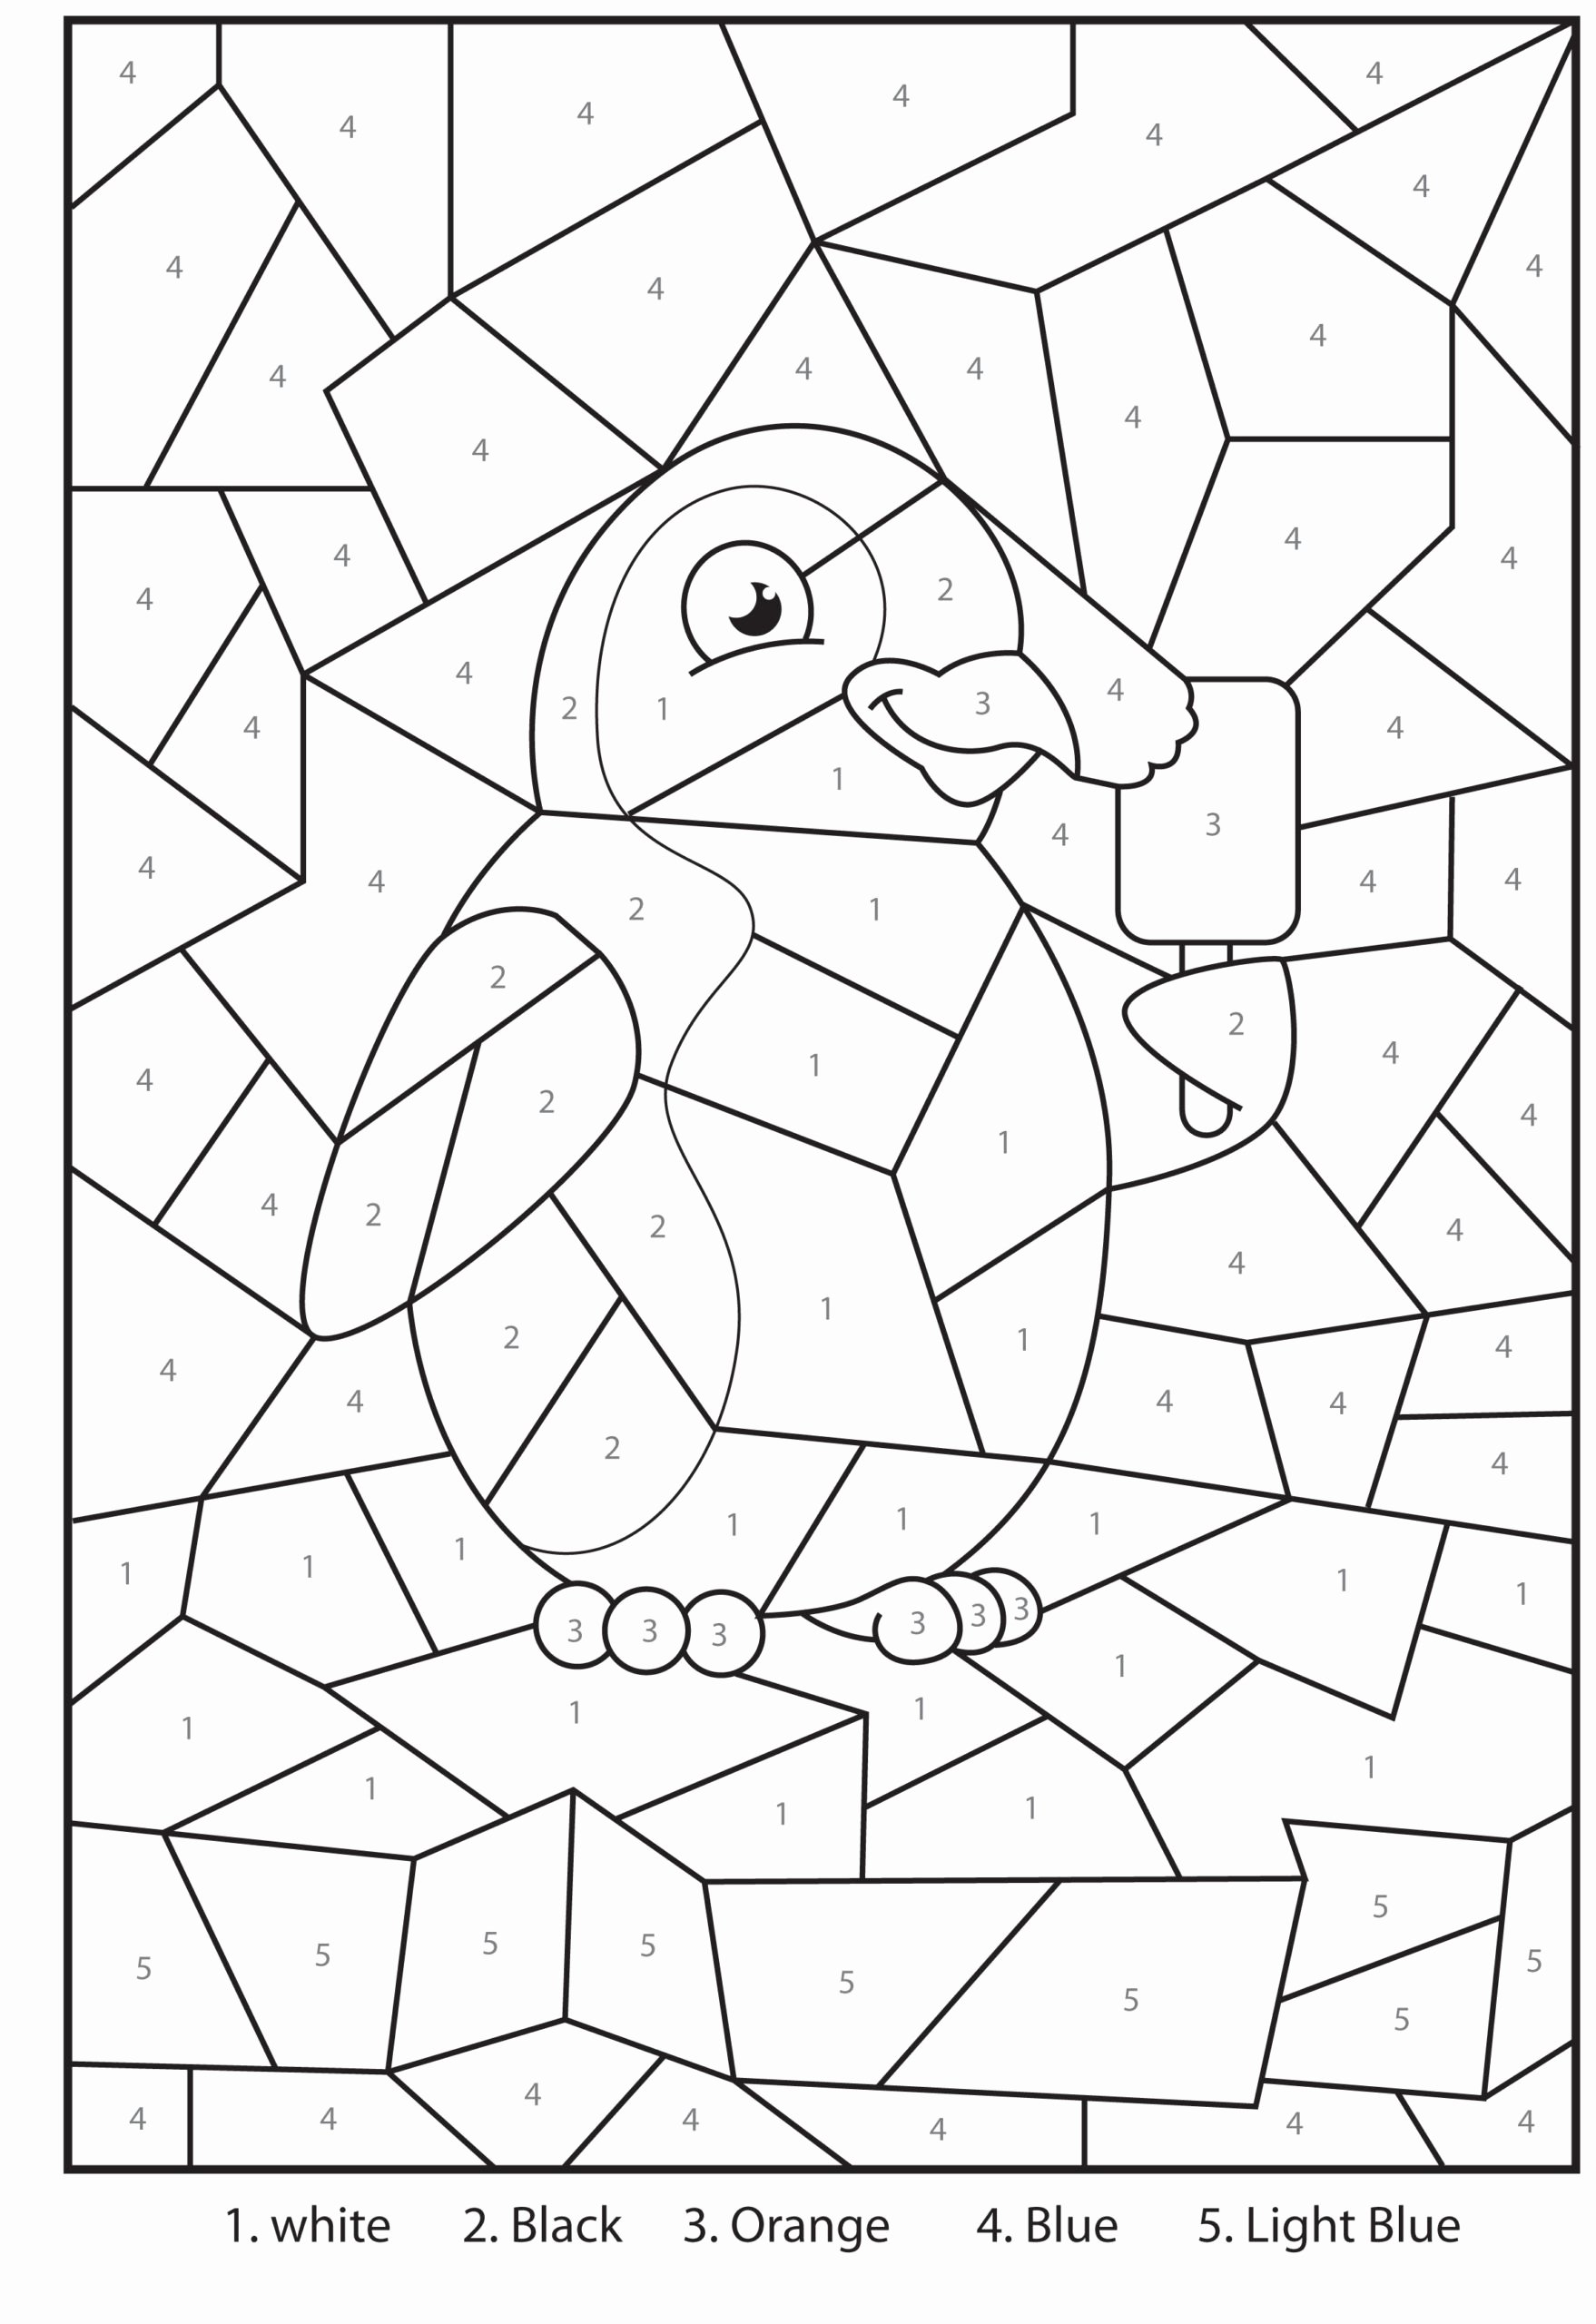 Multiplication Worksheets Grade 3 Free Printable top Coloring Free Printable Penguin at the Zoo Colour by